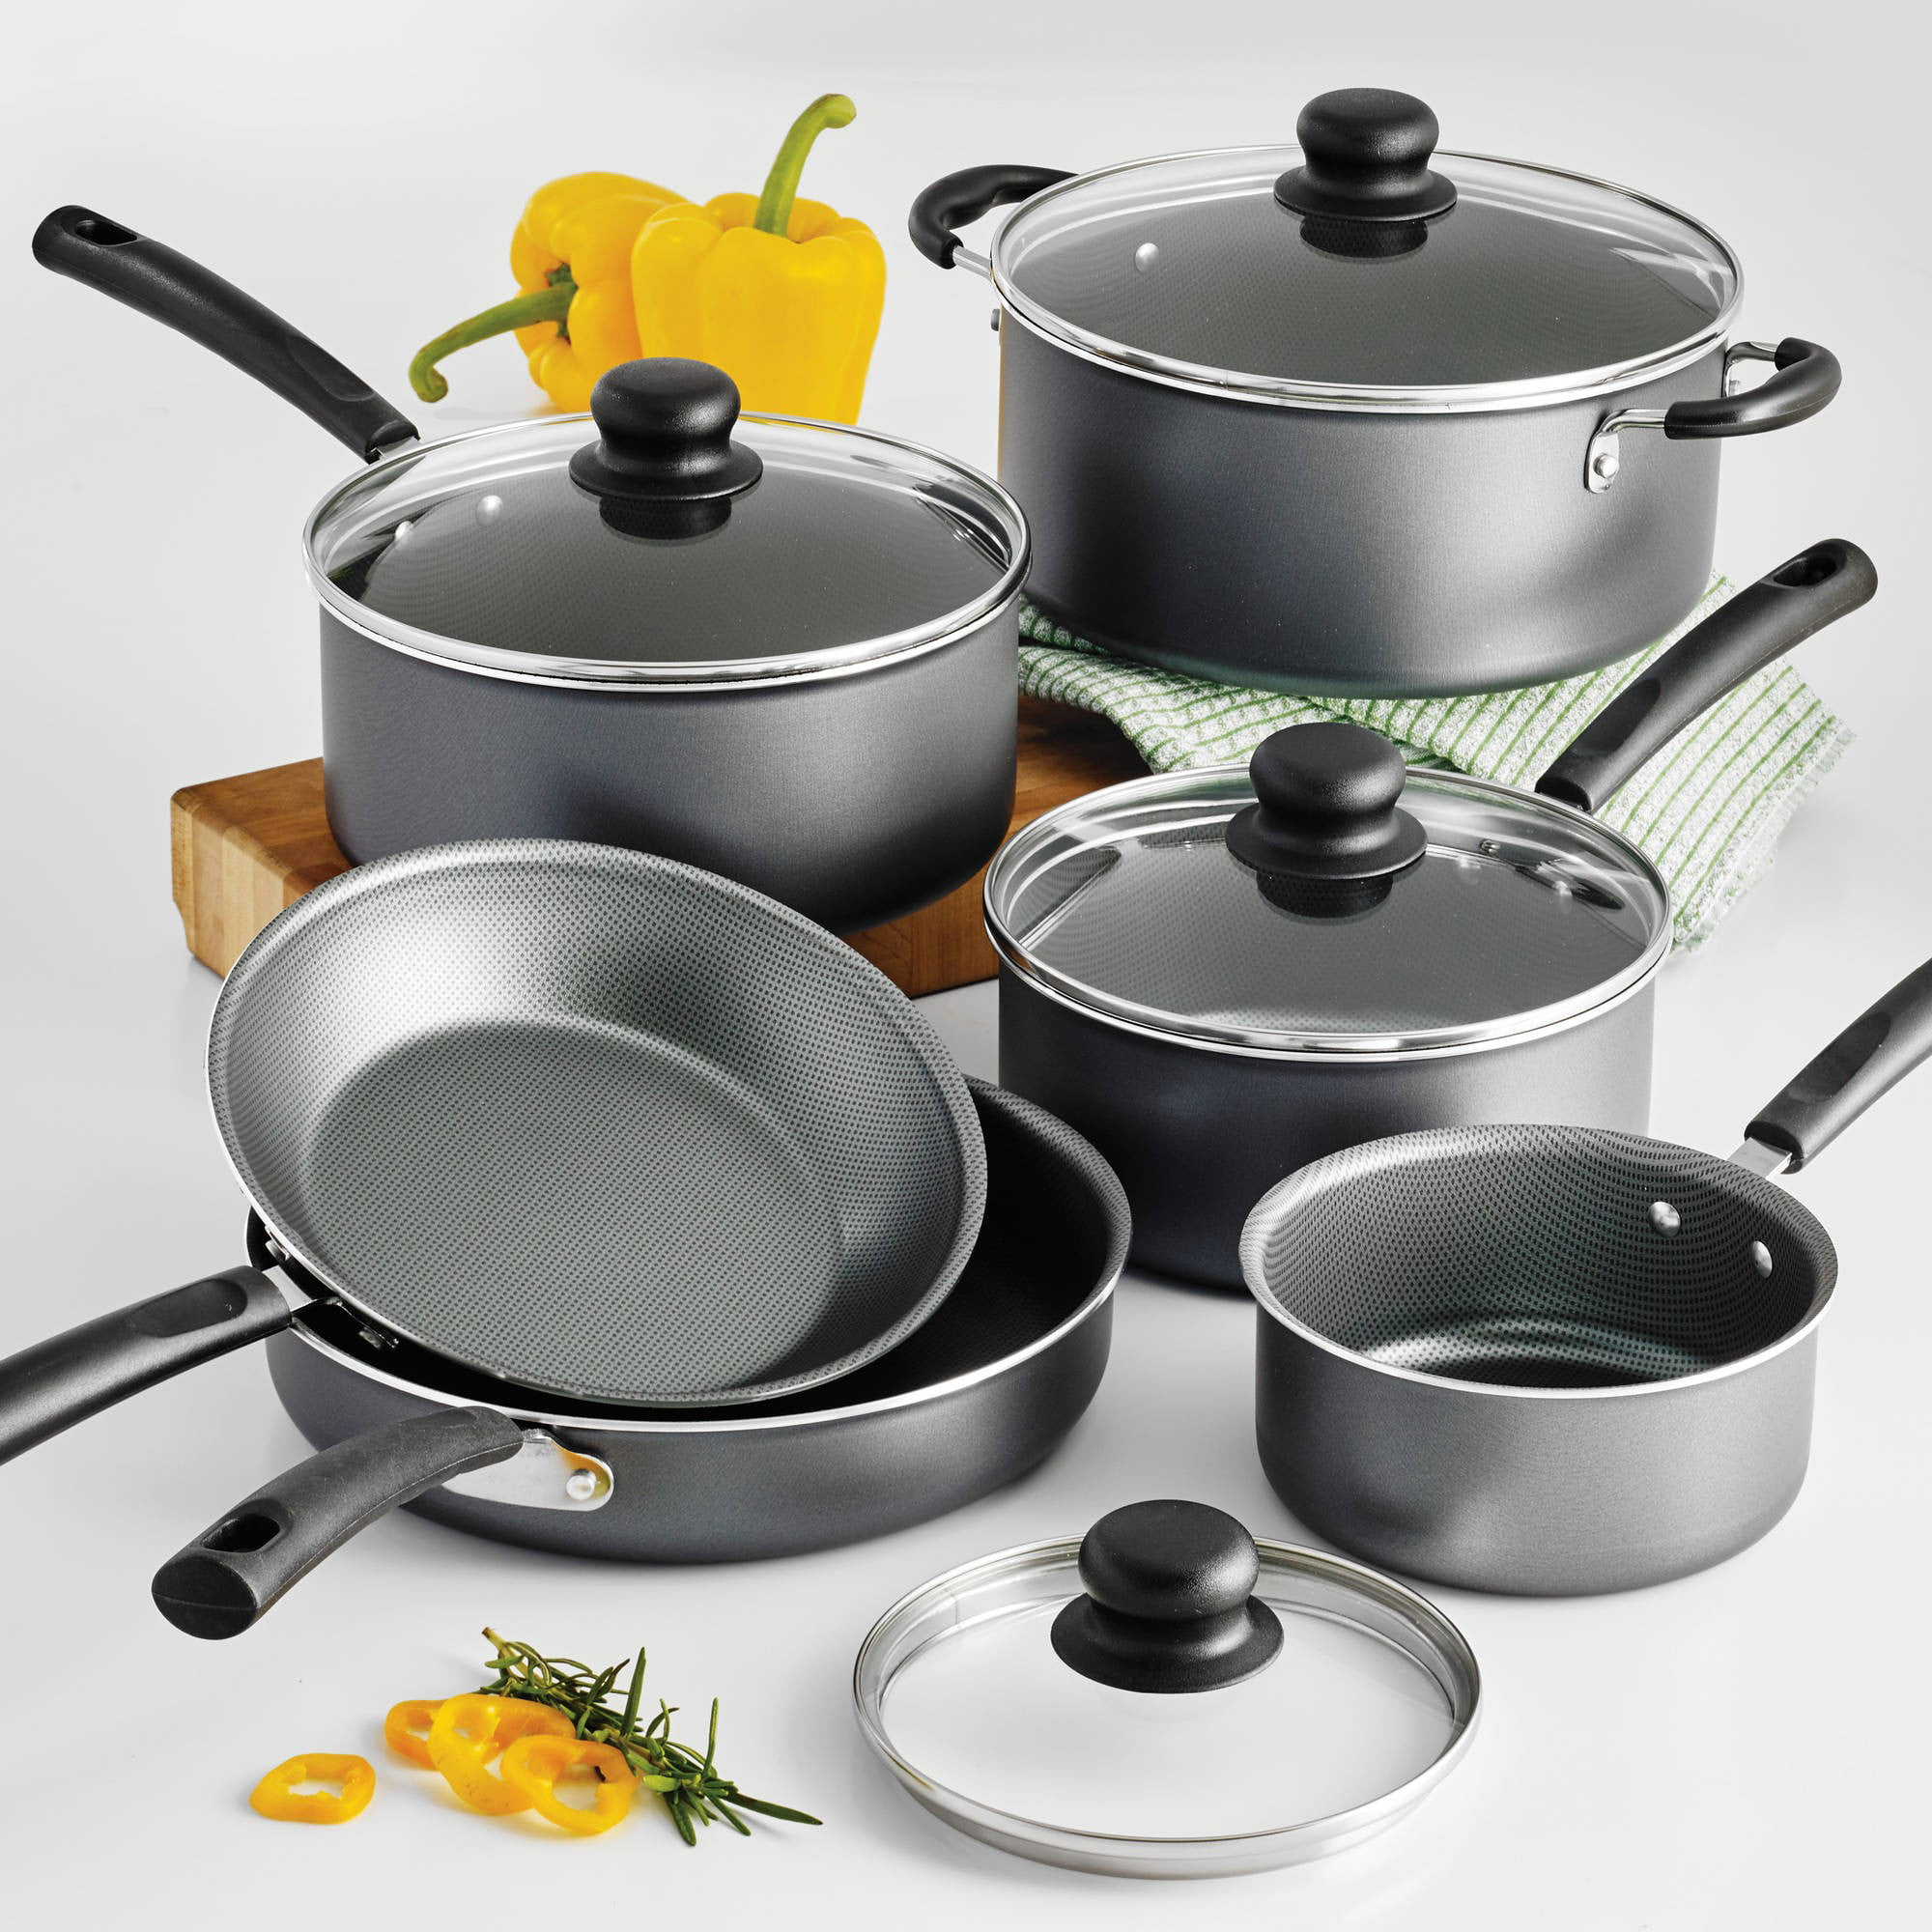 Tramontina PrimaWare 10 Piece Nonstick Cookware Set by Tramontina